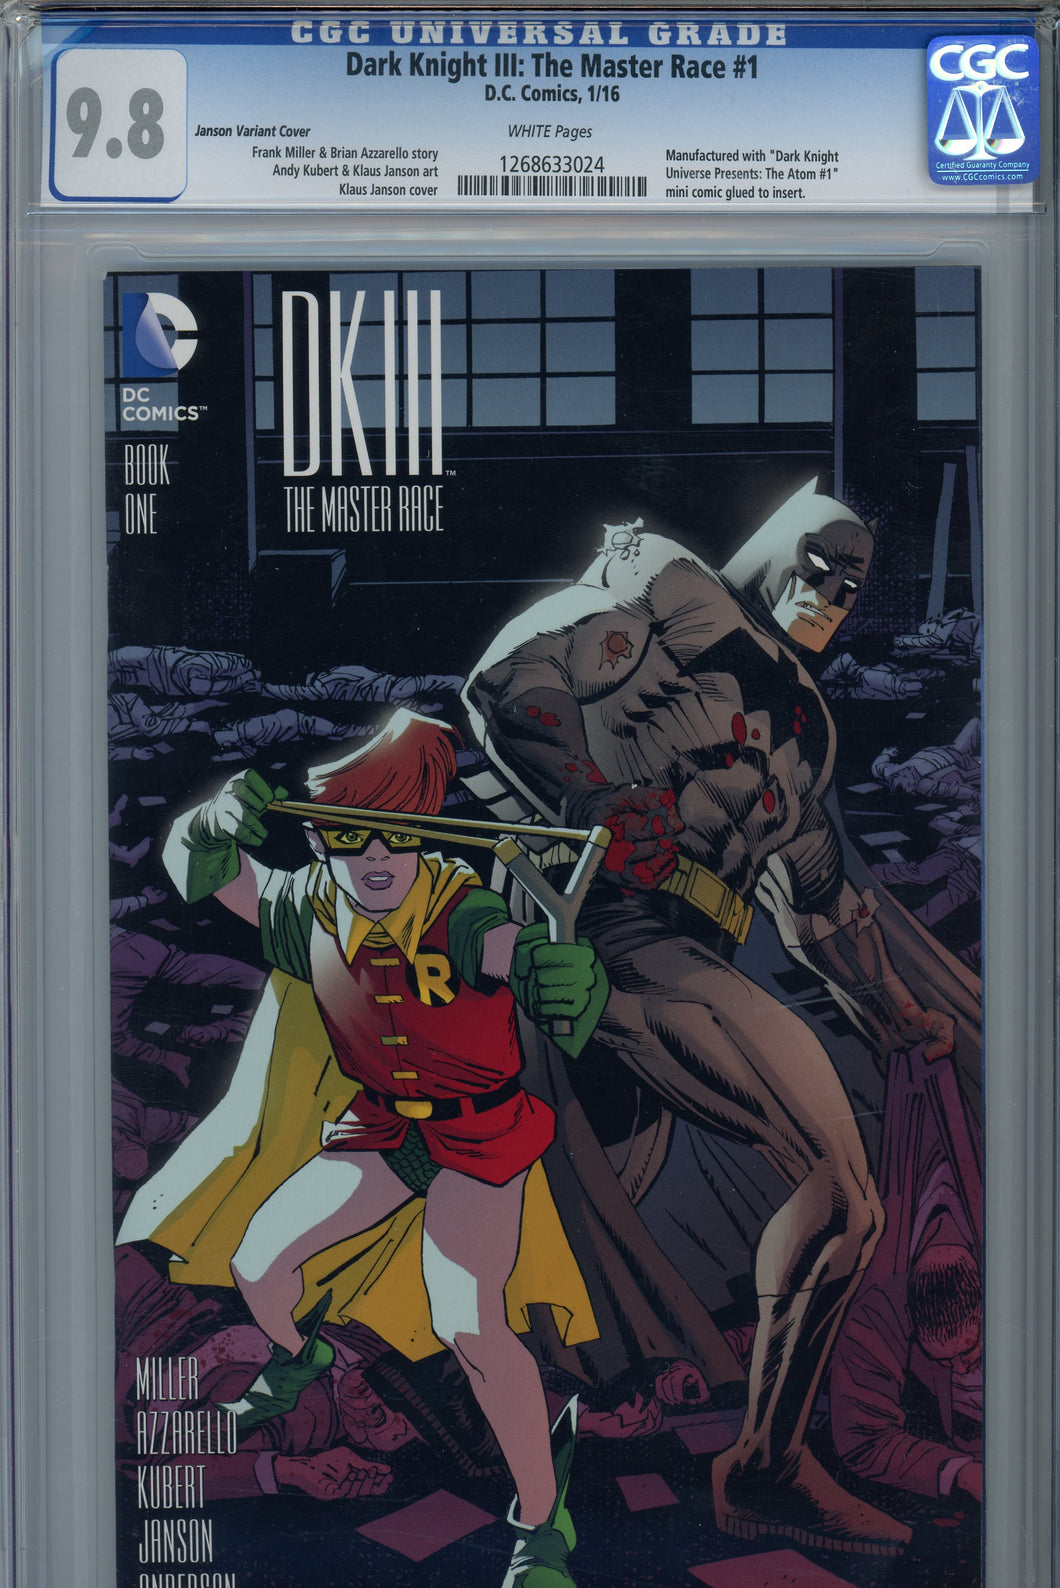 Dark Knight III: The Master Race #1 CGC 9.8 Janson Variant